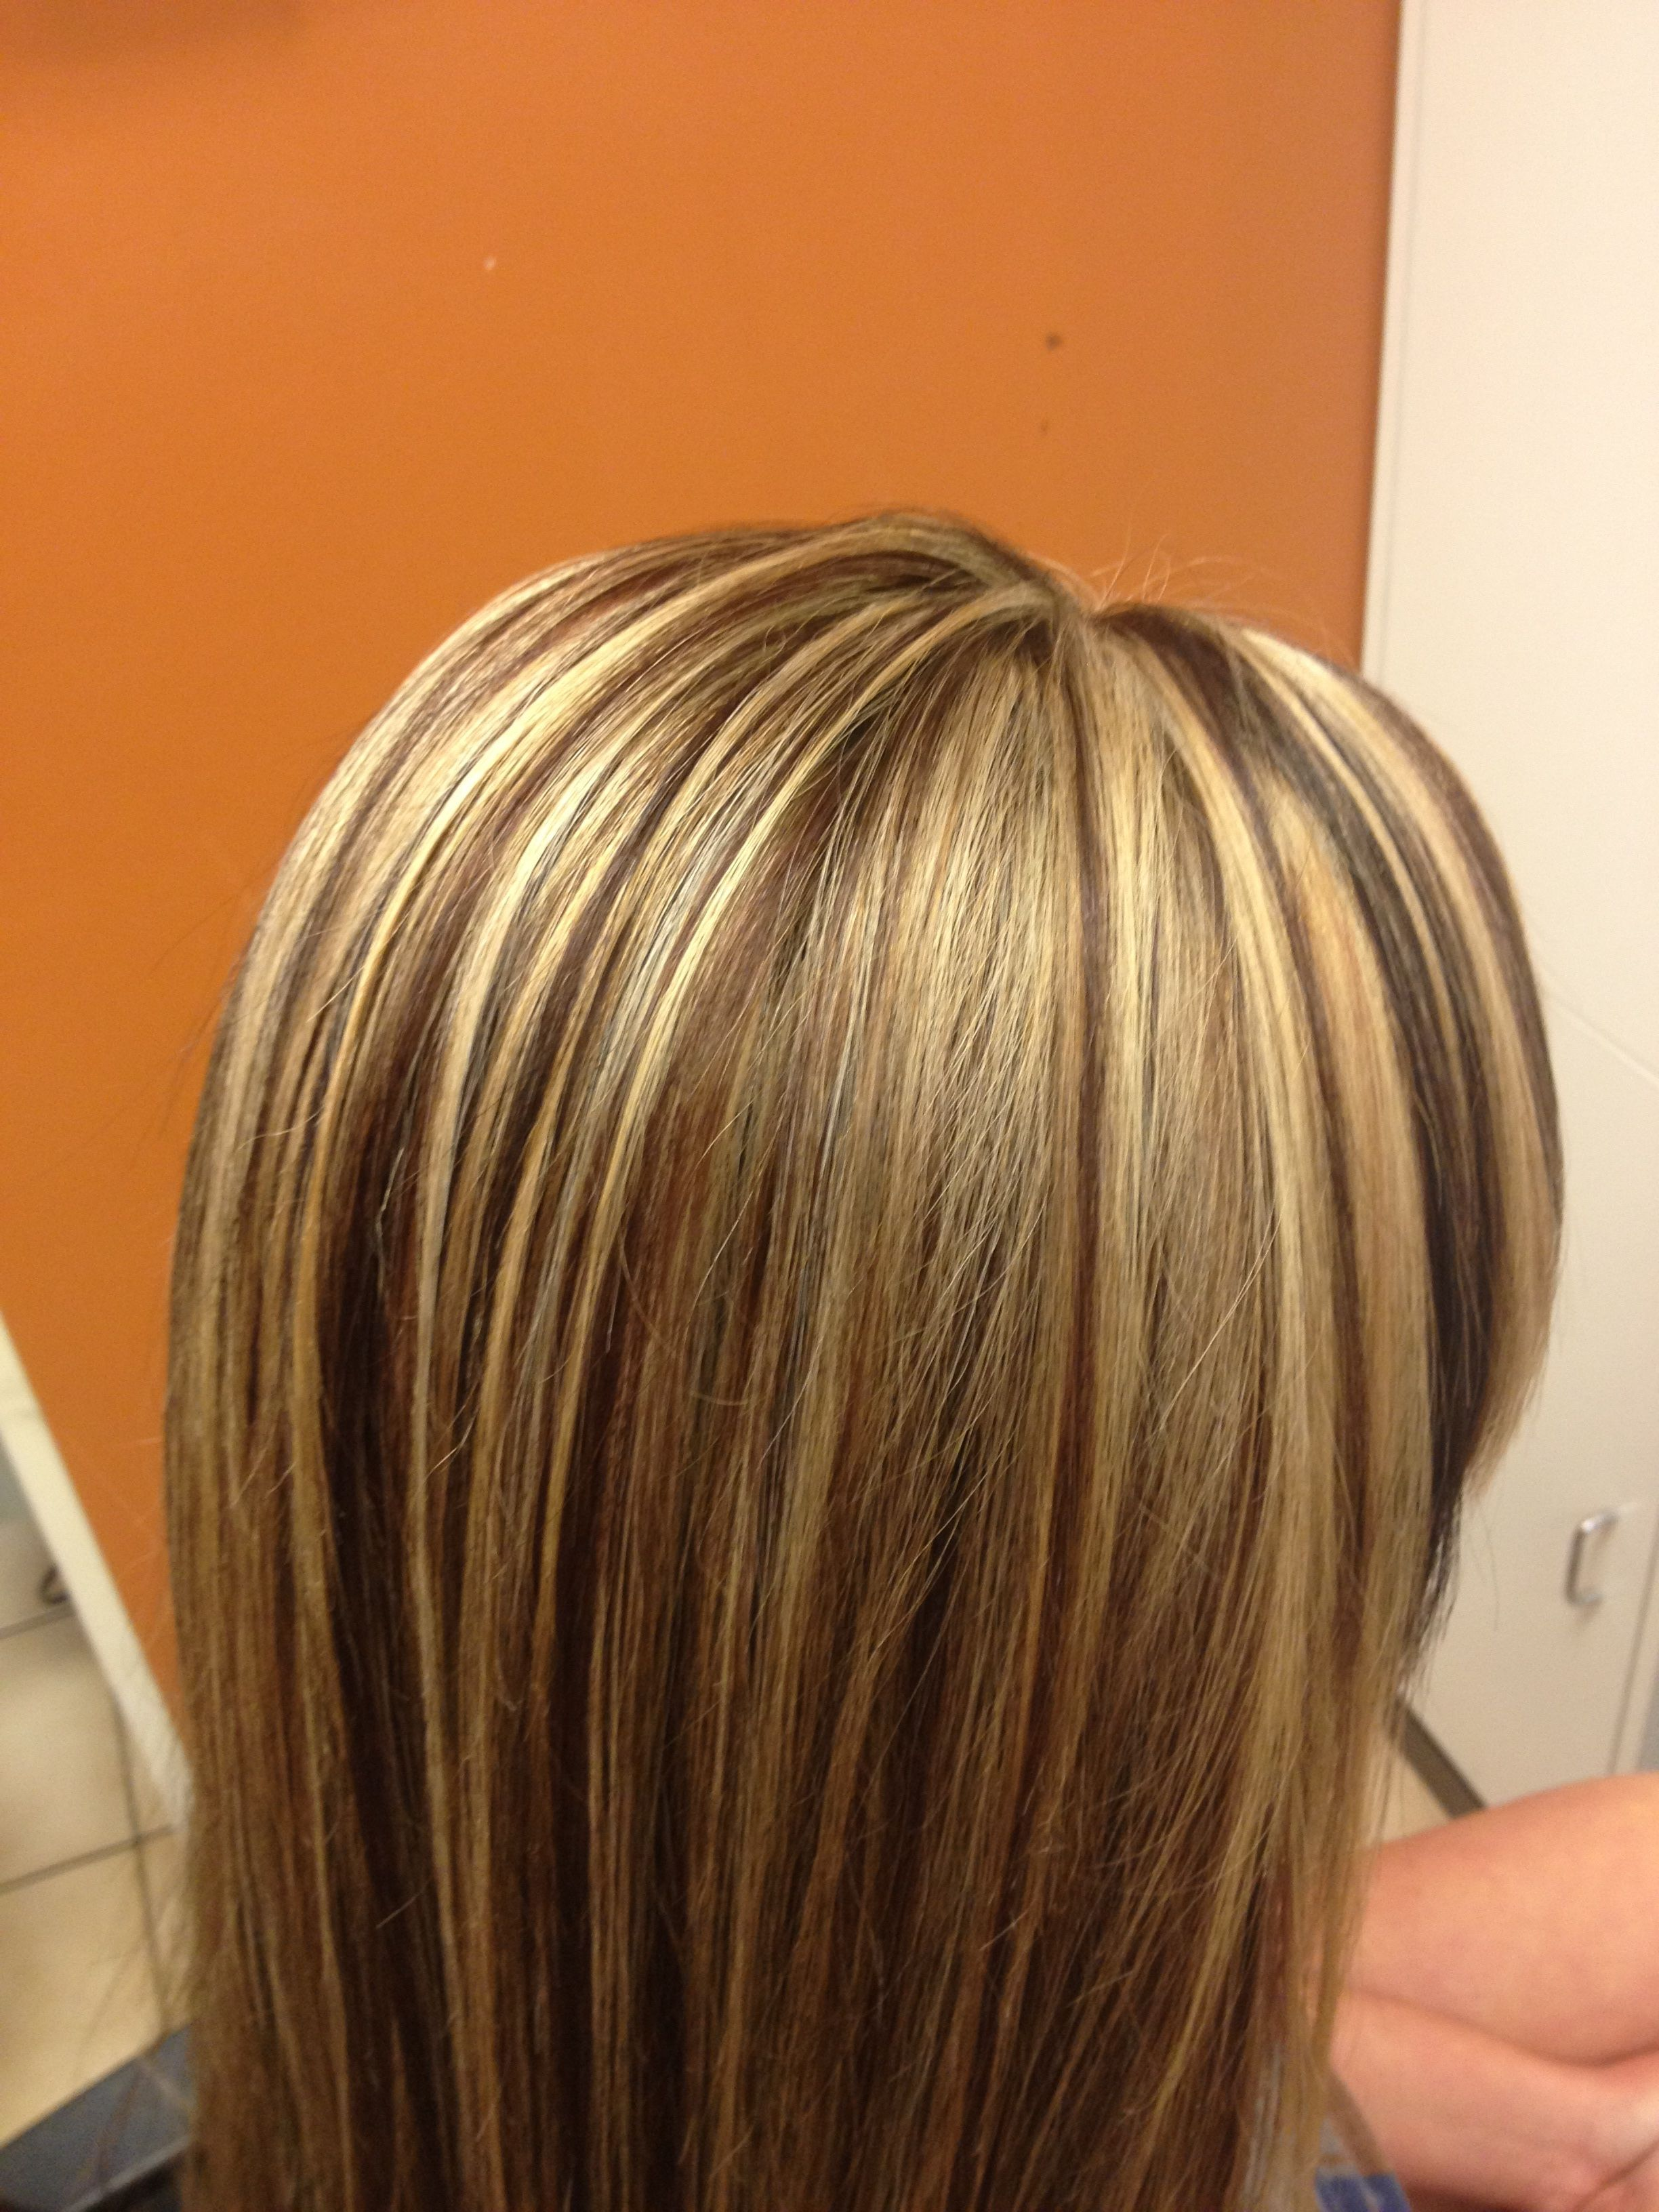 Long hair slices of highlights and lowlights HAIR by Meg